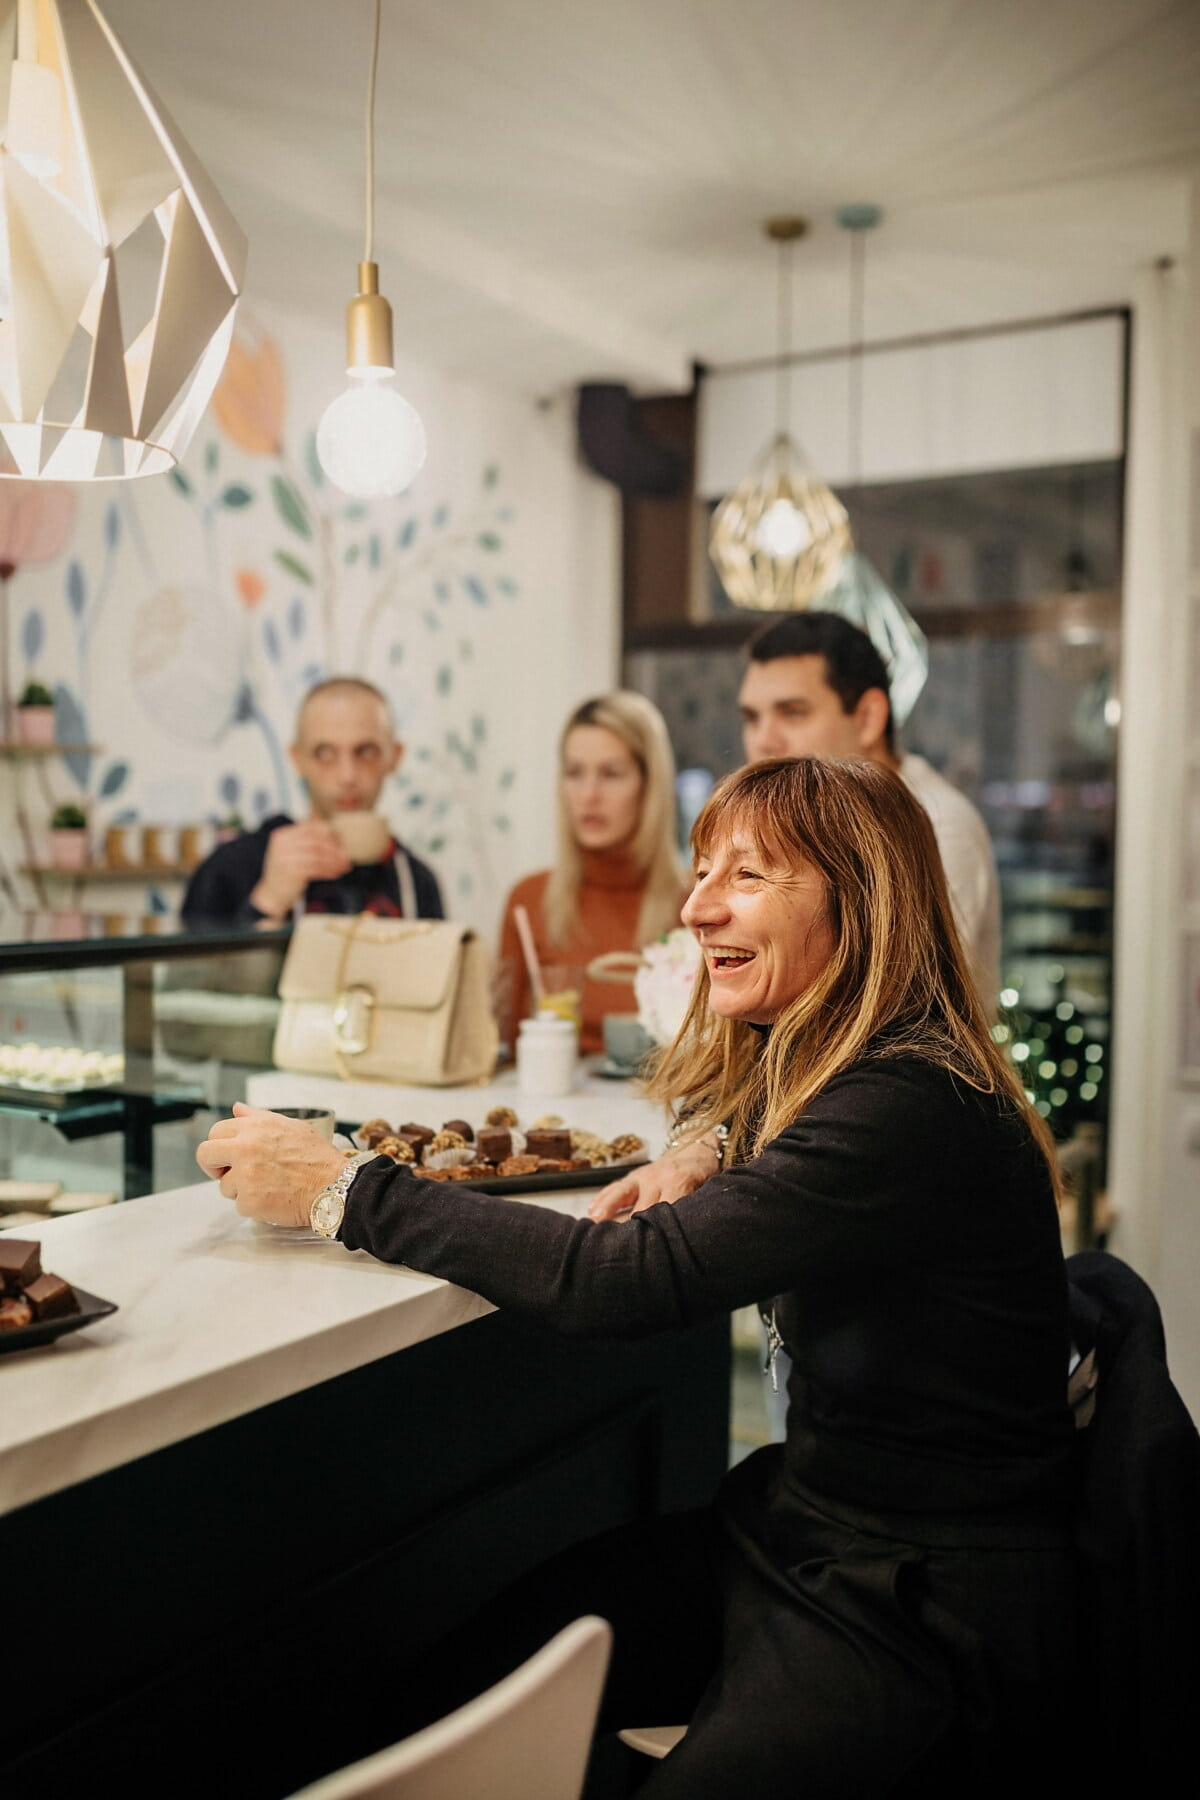 cake shop, enjoyment, people, cafeteria, smiling, conversation, customers, woman, indoors, man